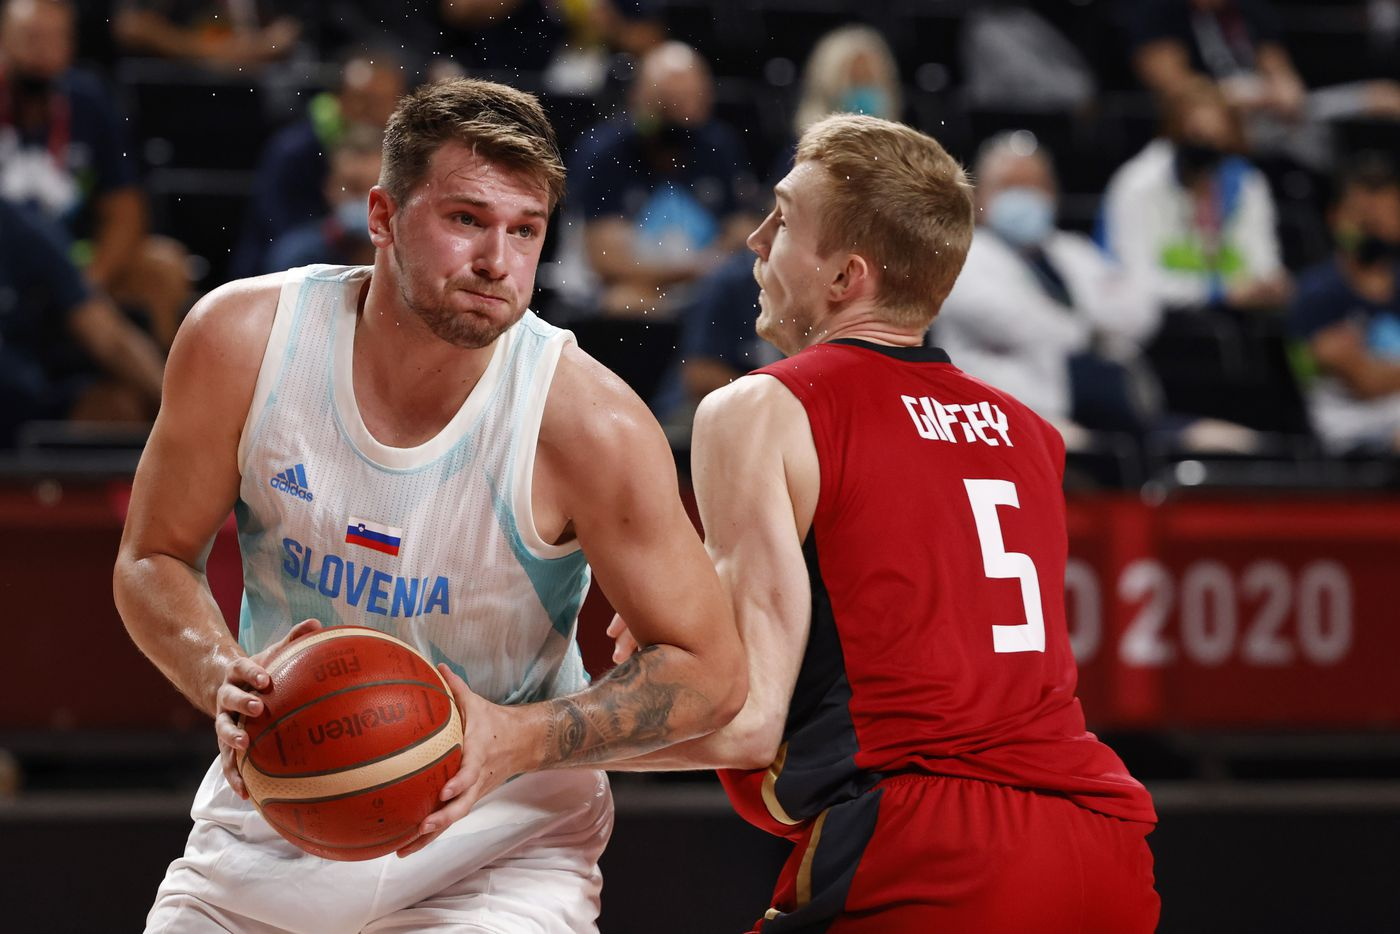 Slovenia's Luka Doncic (77) drives on Germany's Niels Giffey (5) during the first half of play of a quarter final basketball game at the postponed 2020 Tokyo Olympics at Saitama Super Arena, on Tuesday, August 3, 2021, in Saitama, Japan. (Vernon Bryant/The Dallas Morning News)